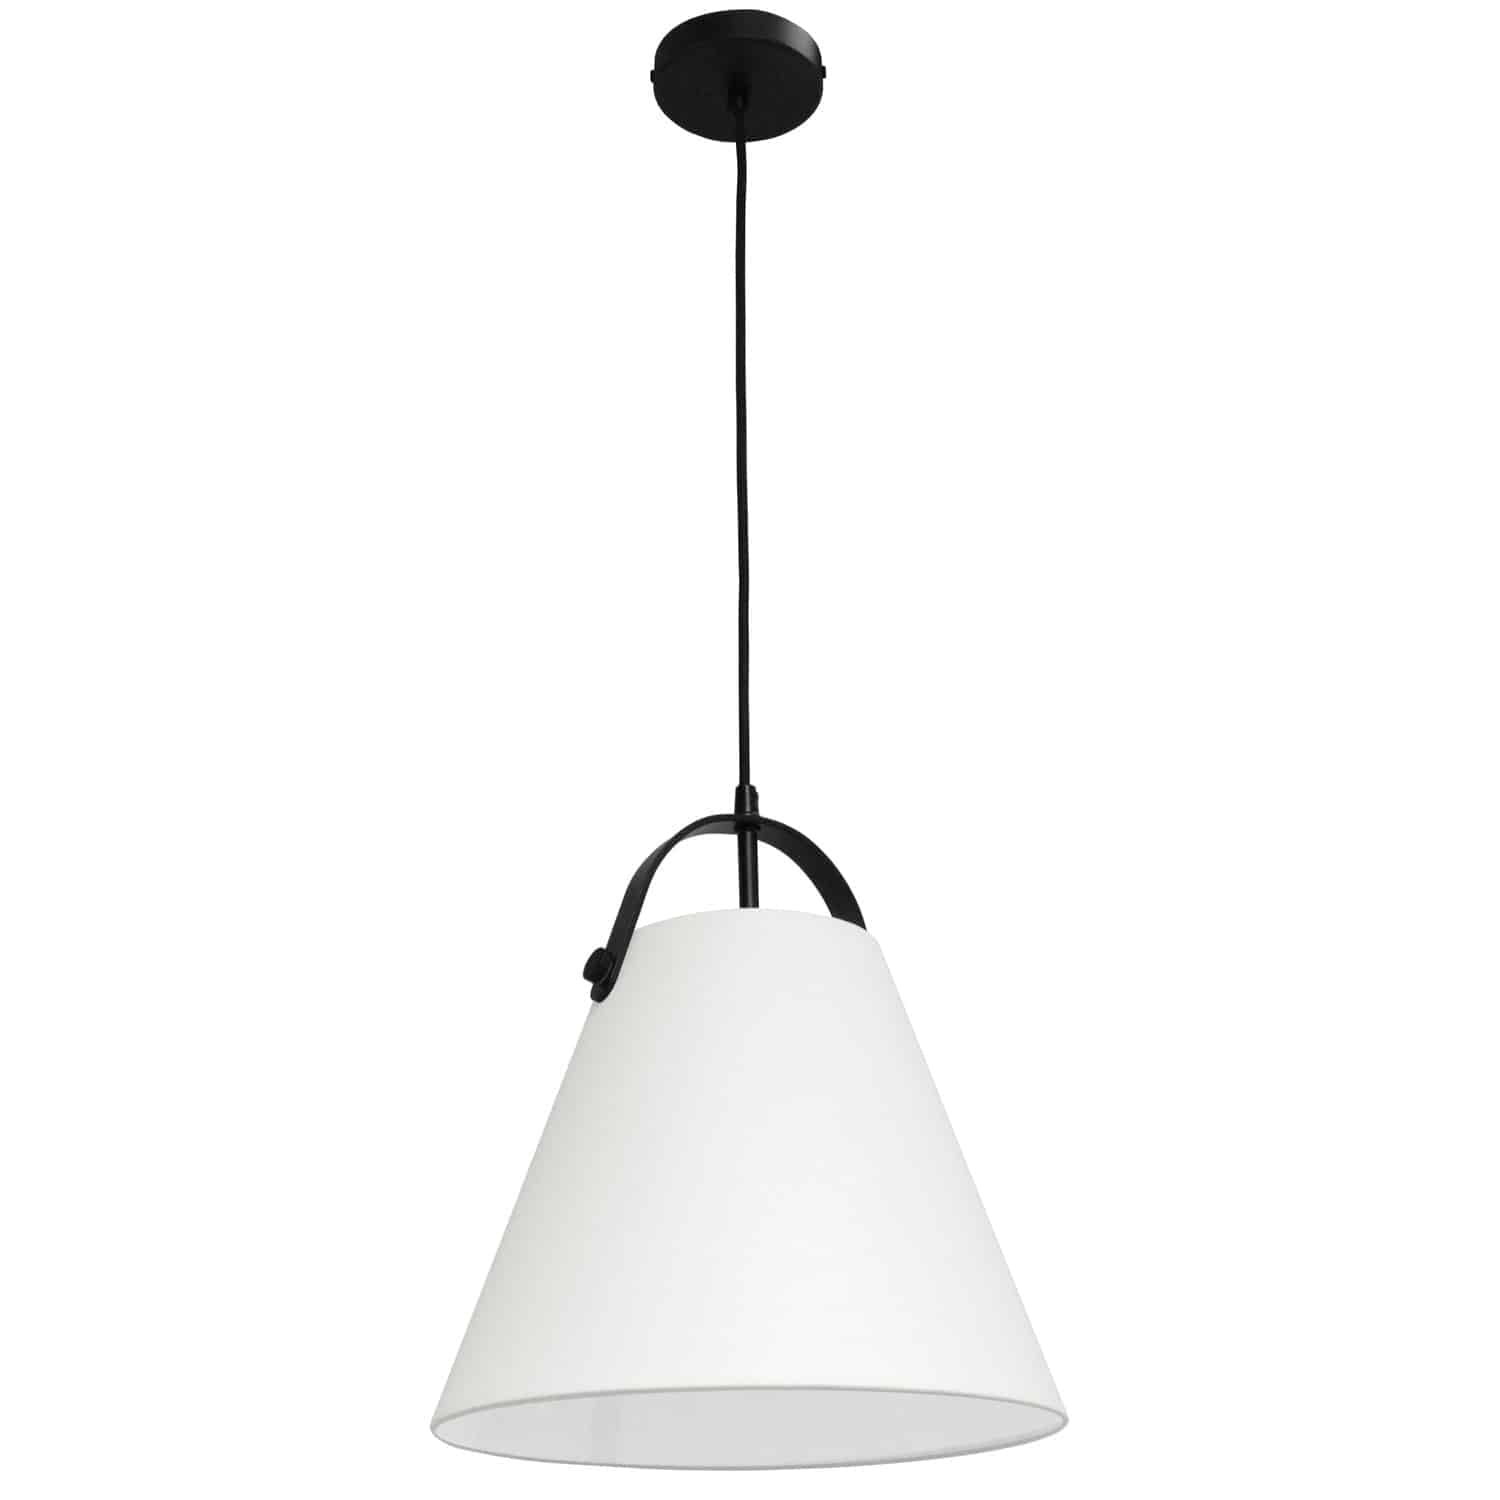 1 Light Emperor Pendant Matte Black with Off White Shade